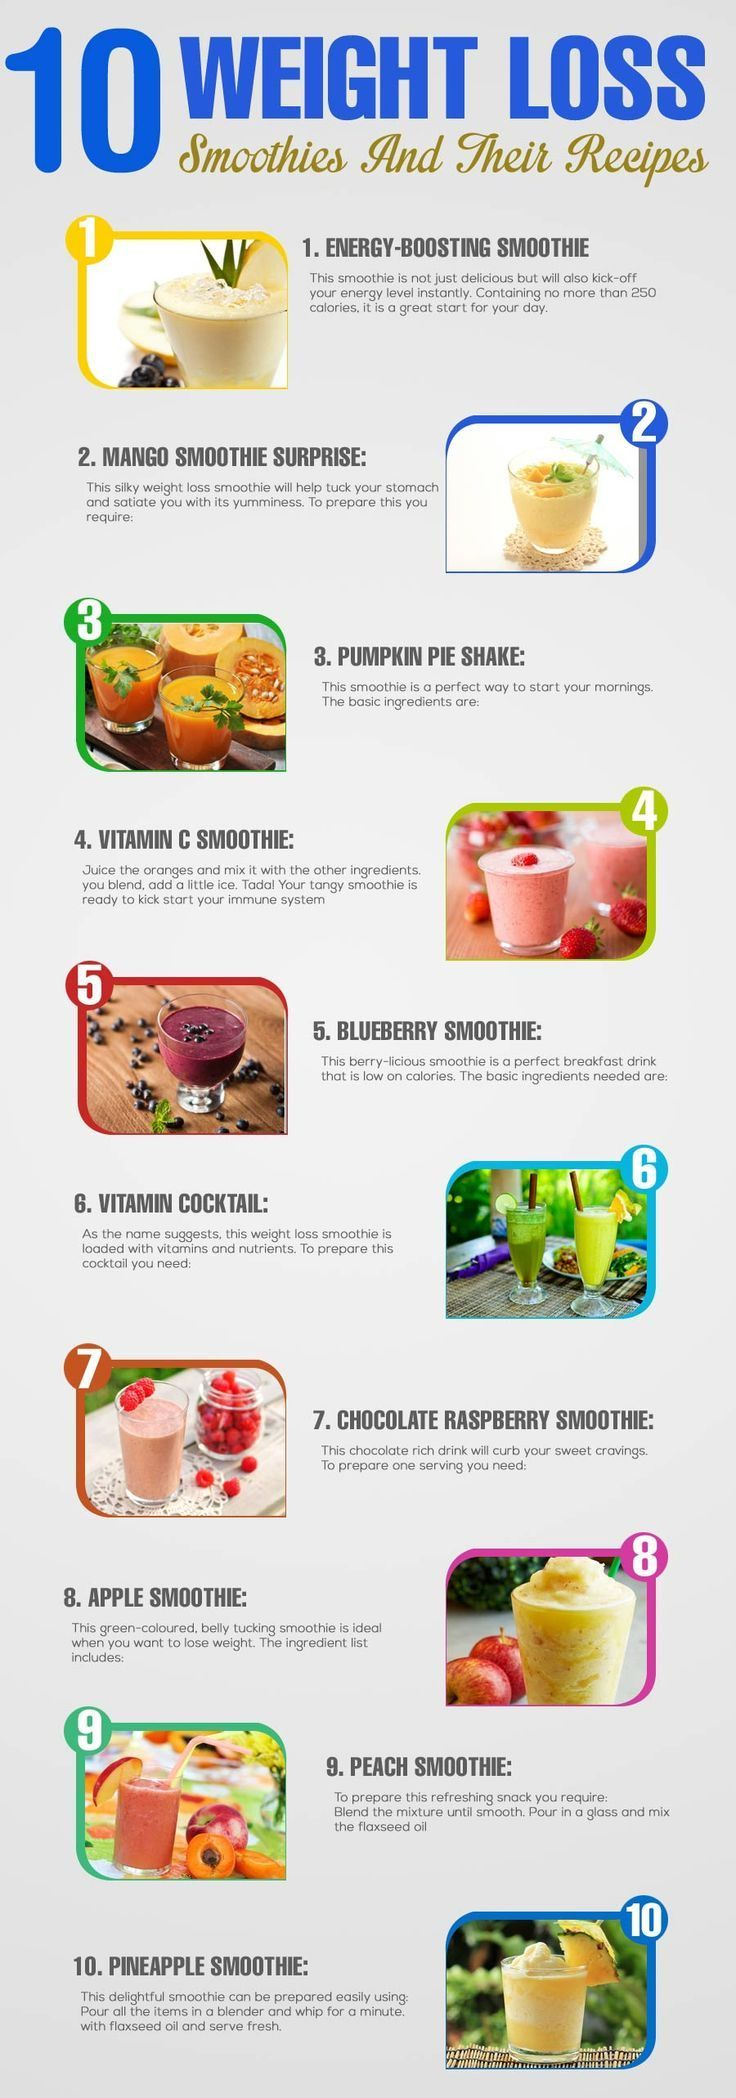 How to make healthy smoothies at home to lose weight healthy smoothies smoothie recipes and How to lose weight on slimming world